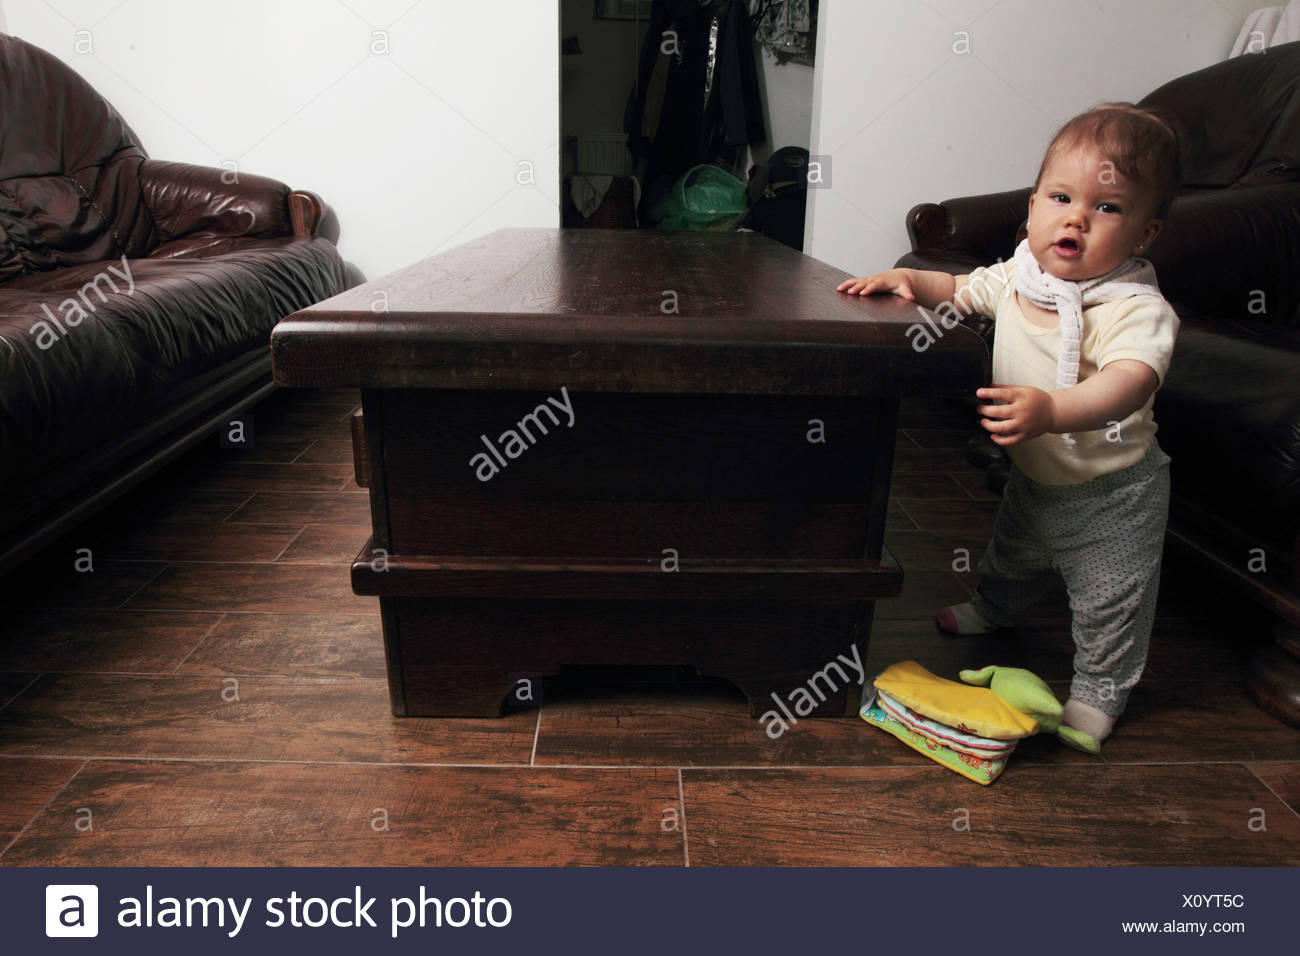 A nine-months-old baby girl standing while holding onto a coffee table. - Stock Image